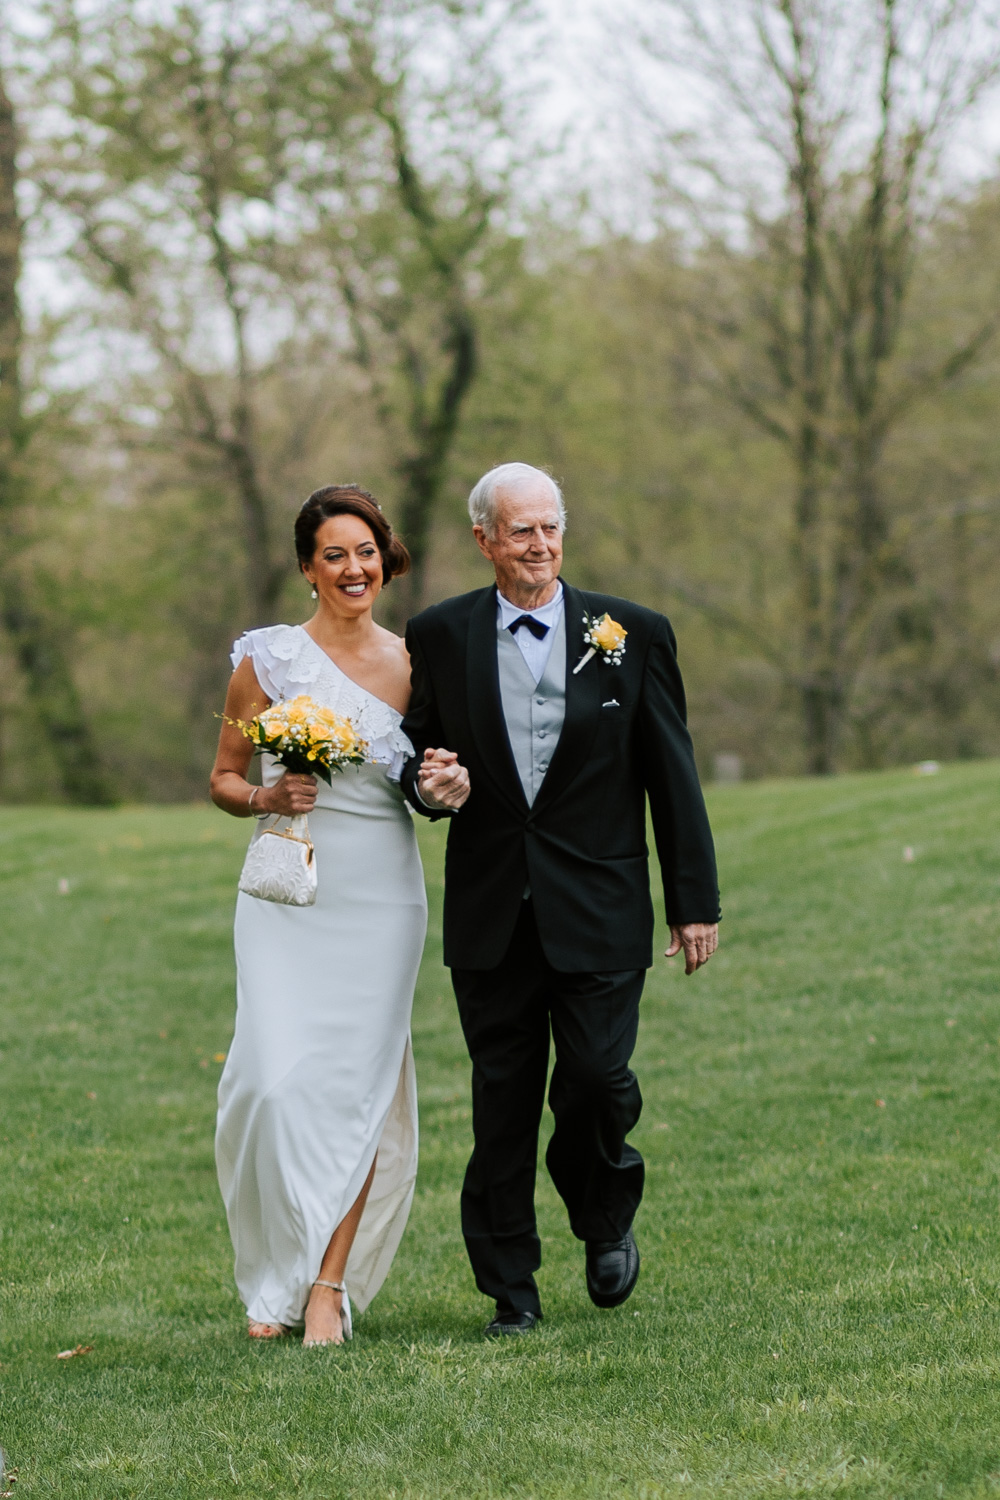 Shutter Up Studios   Wedding photographer in Pittsburgh, Pennsylvania   Outdoor rustic elegant country chic ceremony with father walking bride down the aisle